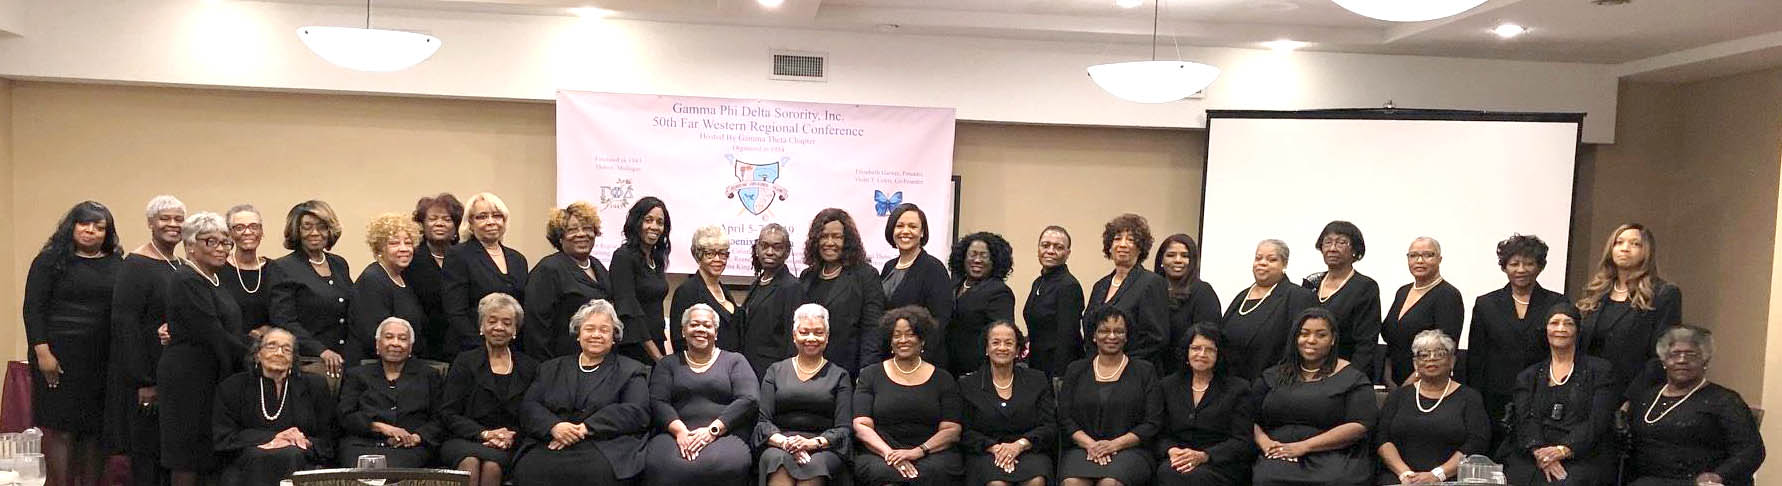 MobiriseFar Western Regional Conference March 24 –26, 2017 Los Angeles, California – Delta Chi Chapter, Host  Far Western Regional Director Verna McCalister and Special Guest Supreme Basileus Lenor Reese